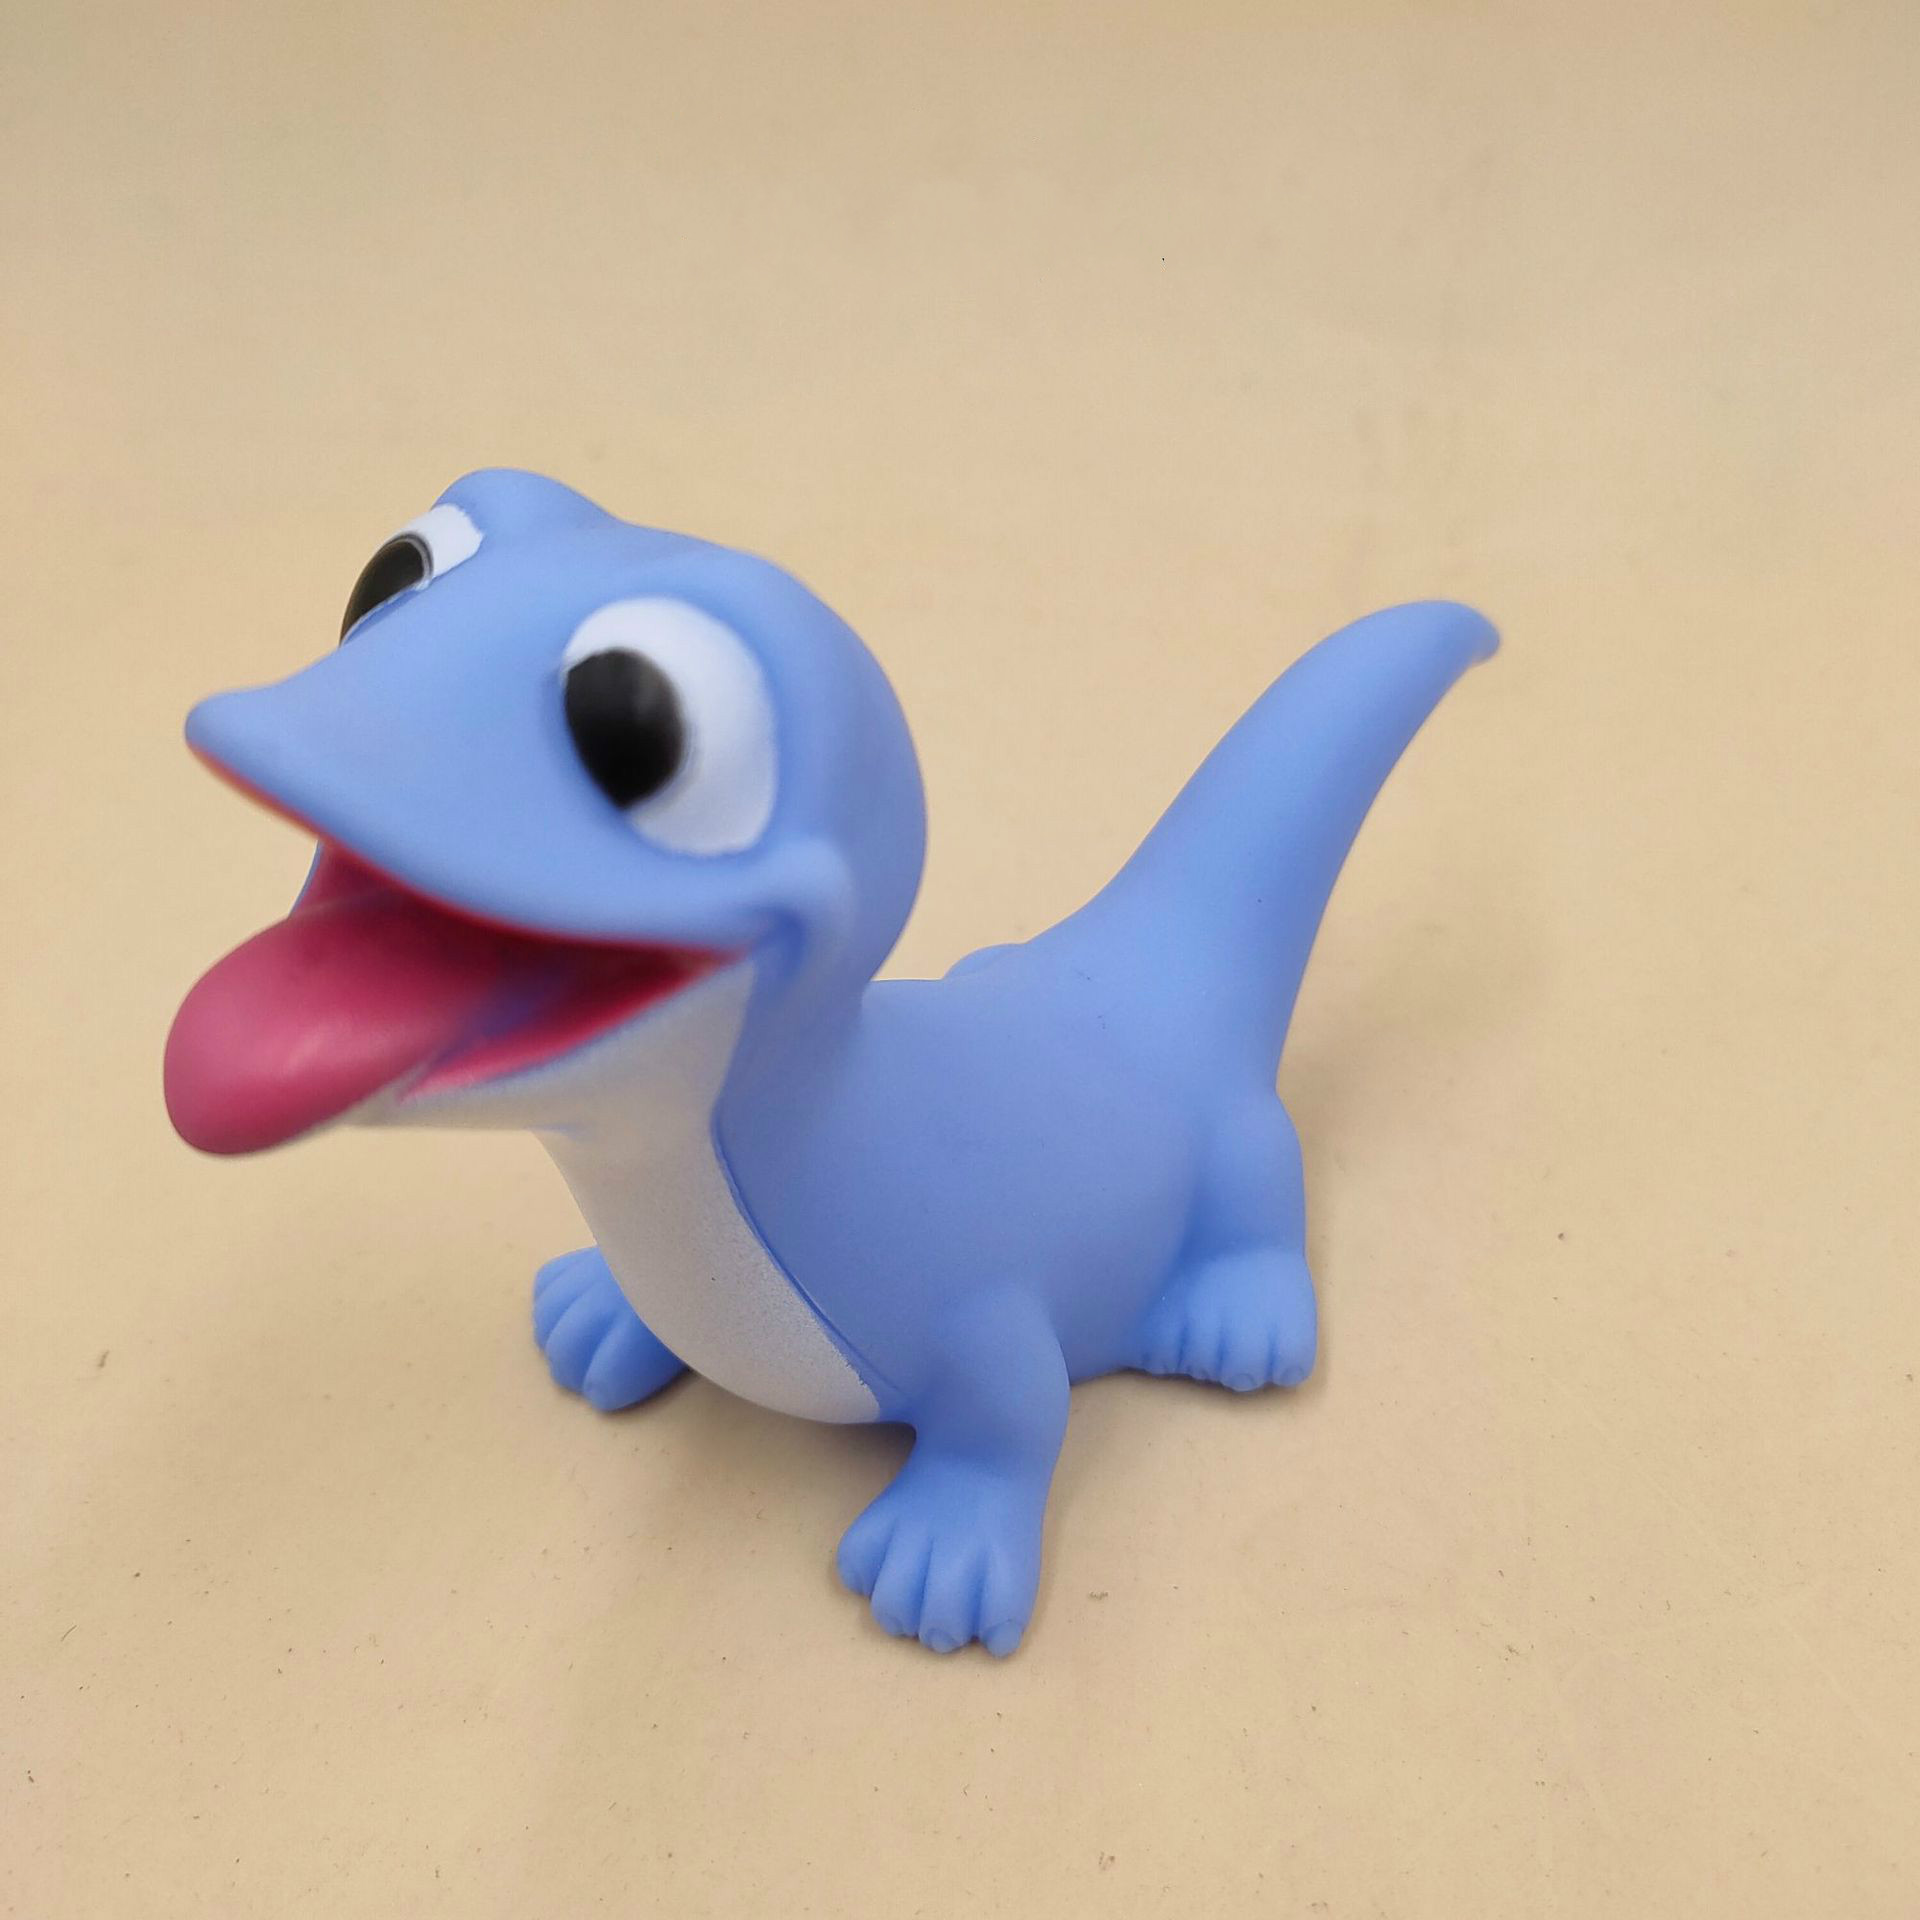 New Cute Blue Salamanders Vinyl Doll Toys Cute Soft Lizard  Action Anime Figure Christmas Gifts For Kids